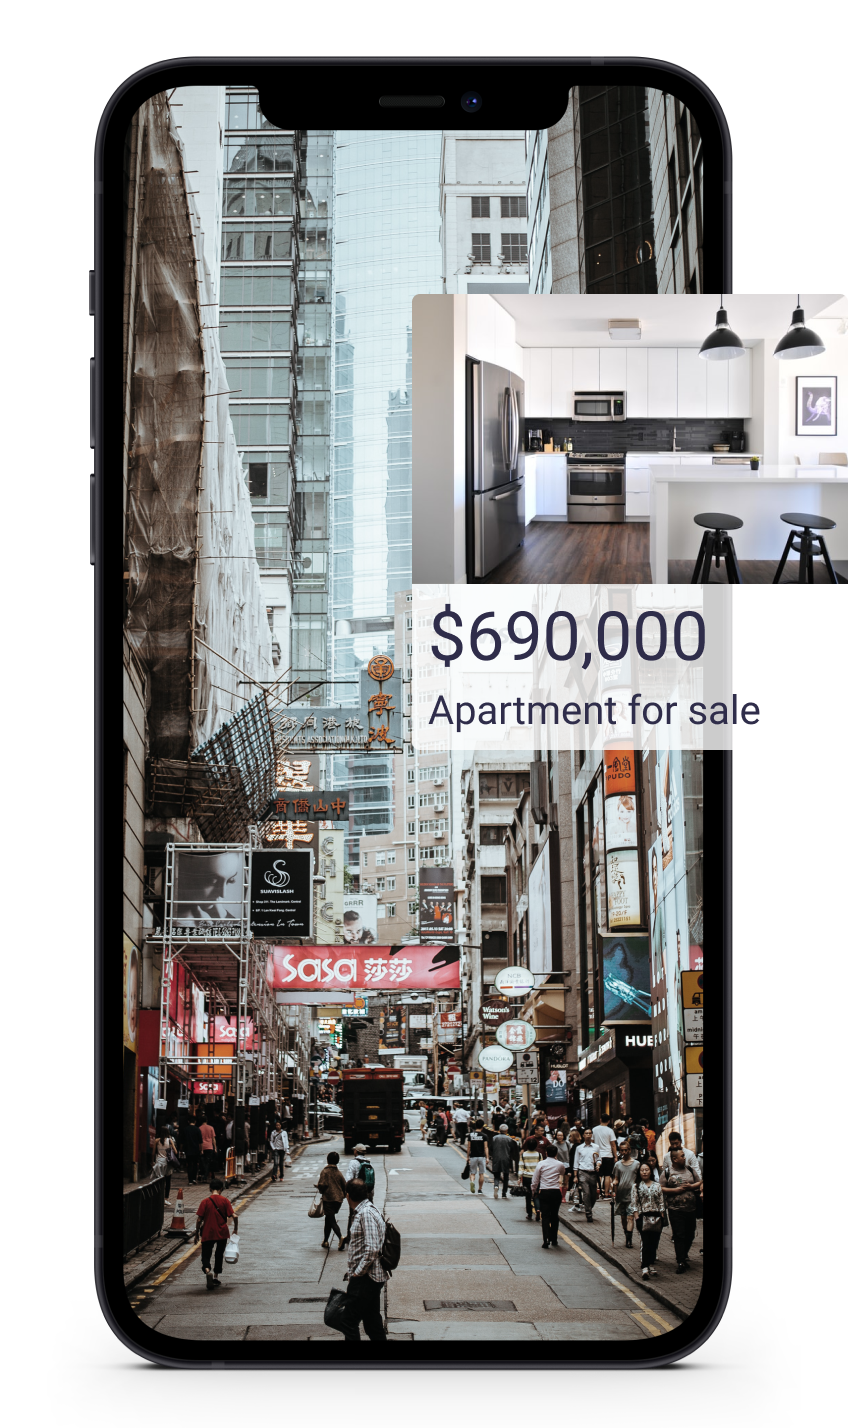 a mockup of a phone screen showing a busy street. there a callout showing details of an apartment available for purchase